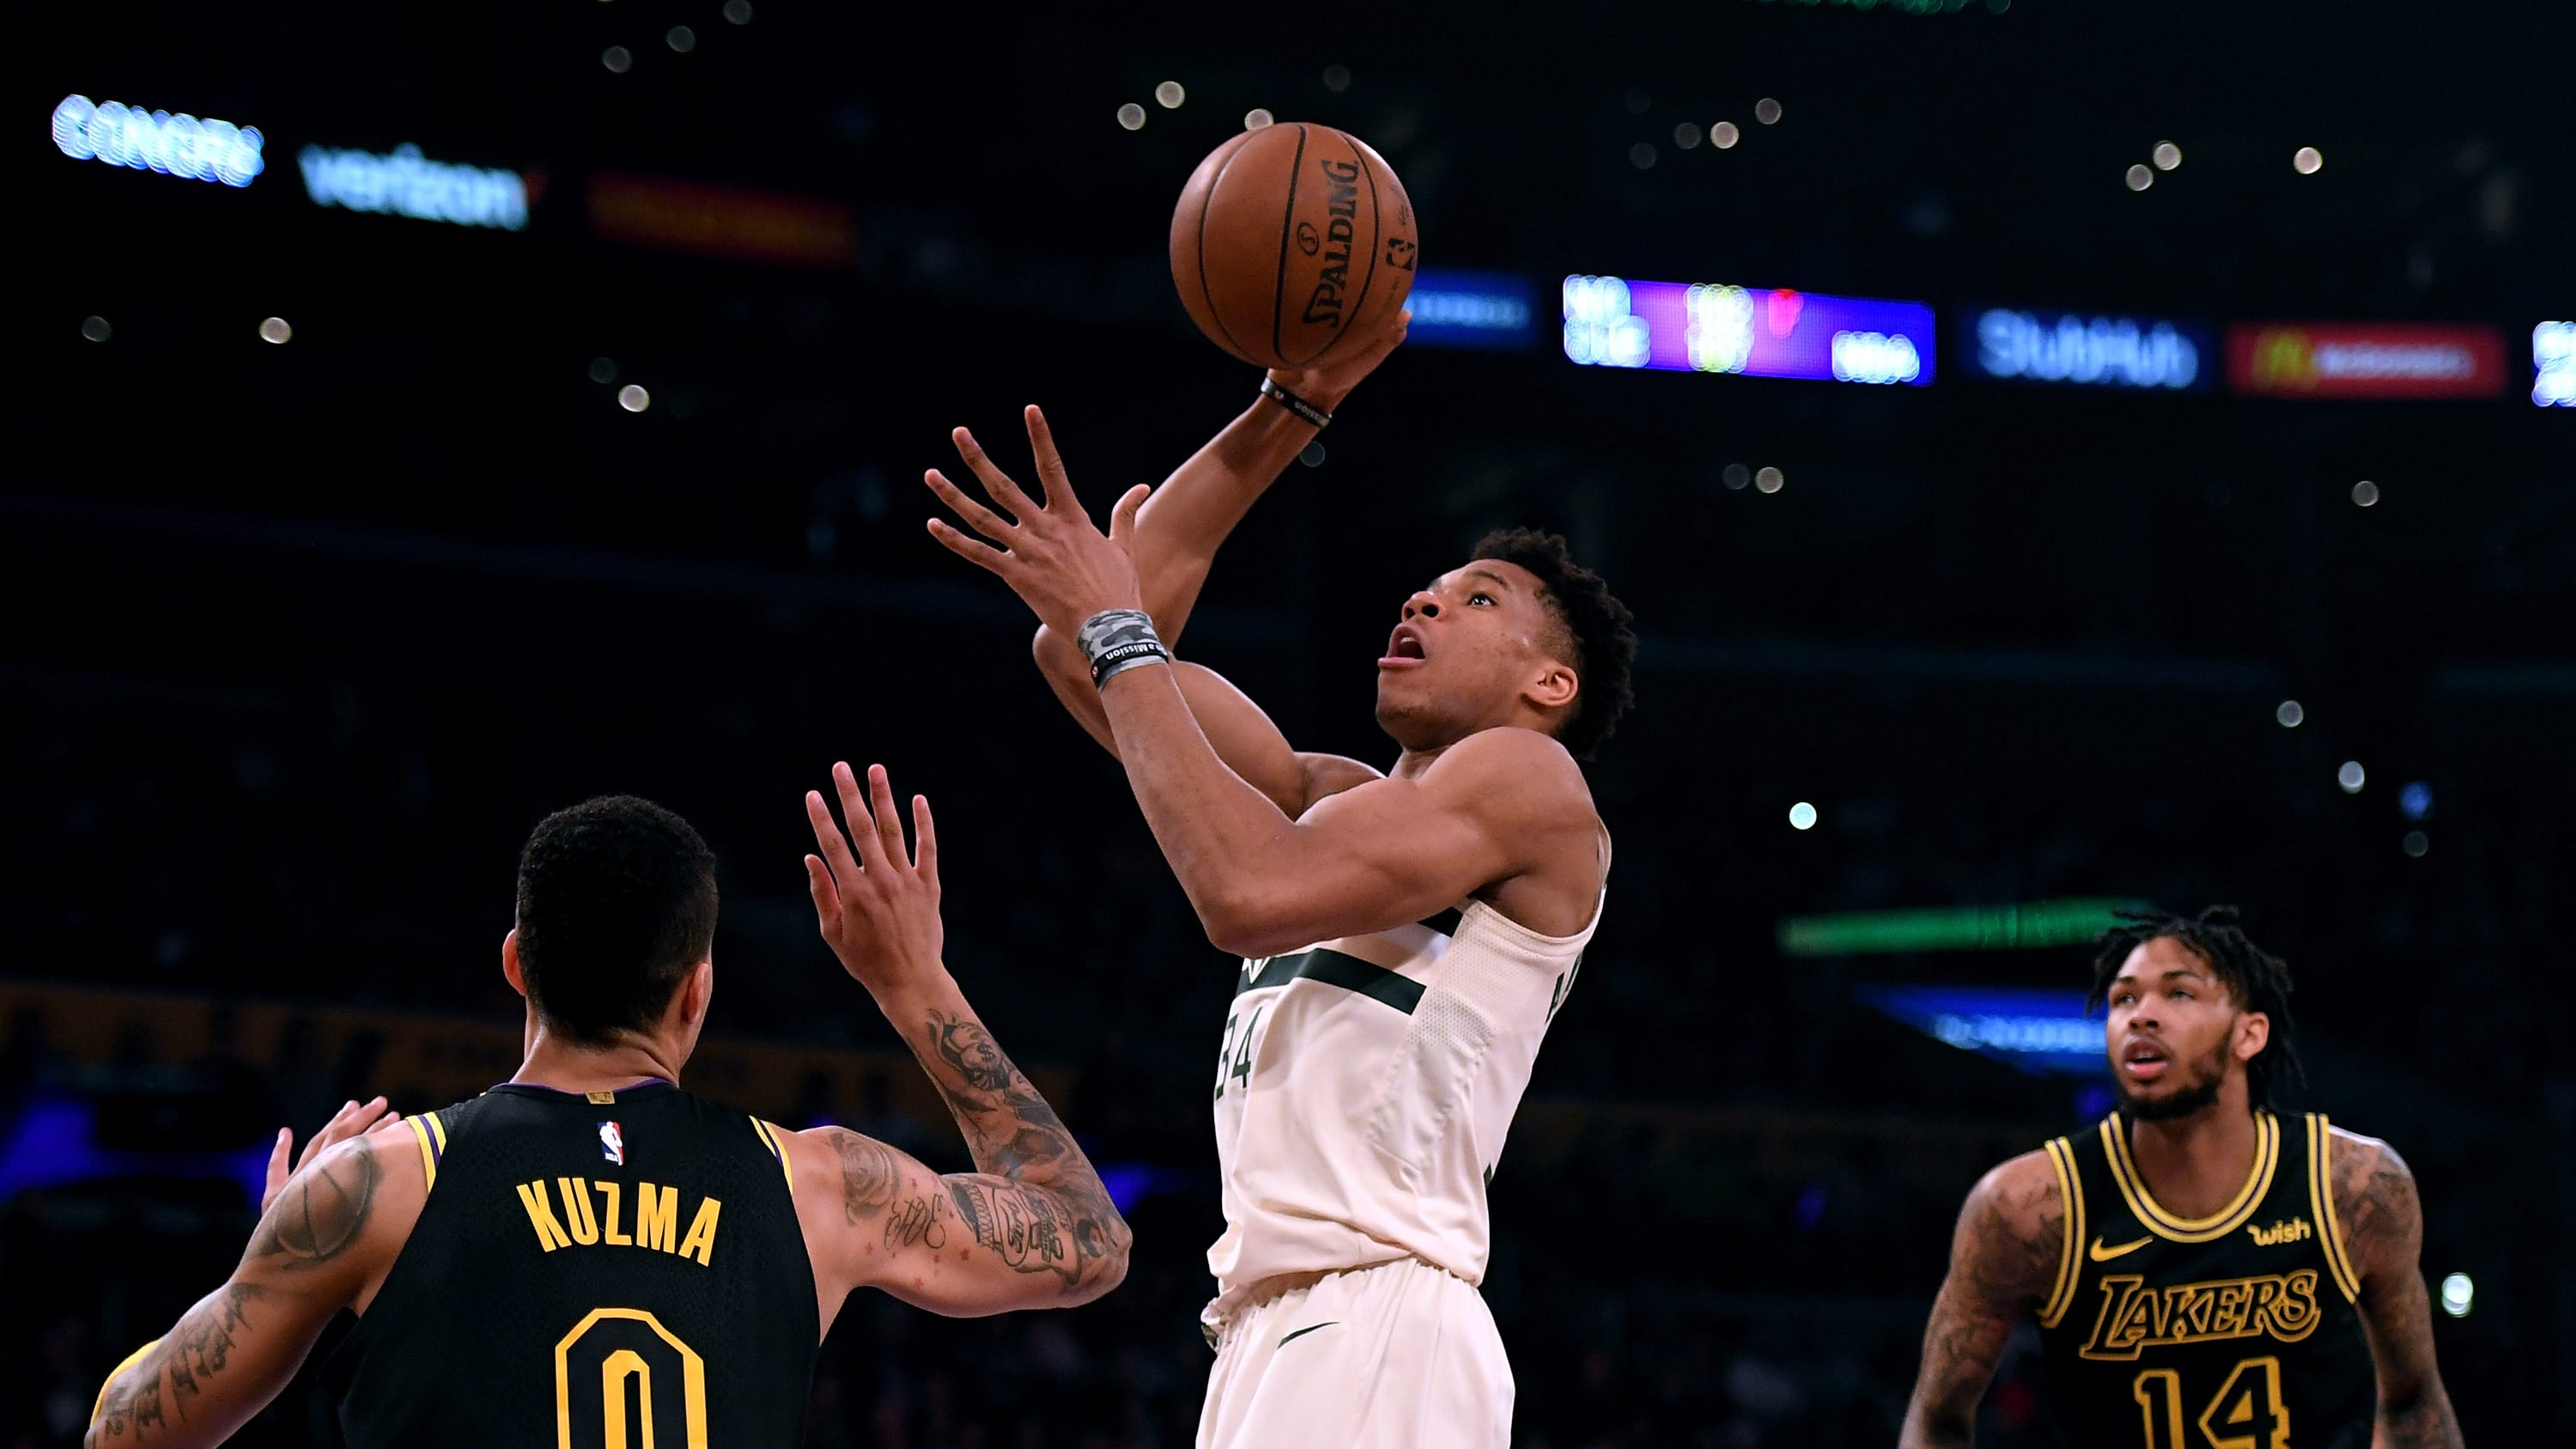 LOS ANGELES, CA - MARCH 30:  Giannis Antetokounmpo #34 of the Milwaukee Bucks scores on a shot between Kyle Kuzma #0 and Brandon Ingram #14 of the Los Angeles Lakers during the first half at Staples Center on March 30, 2018 in Los Angeles, California.  (Photo by Harry How/Getty Images)